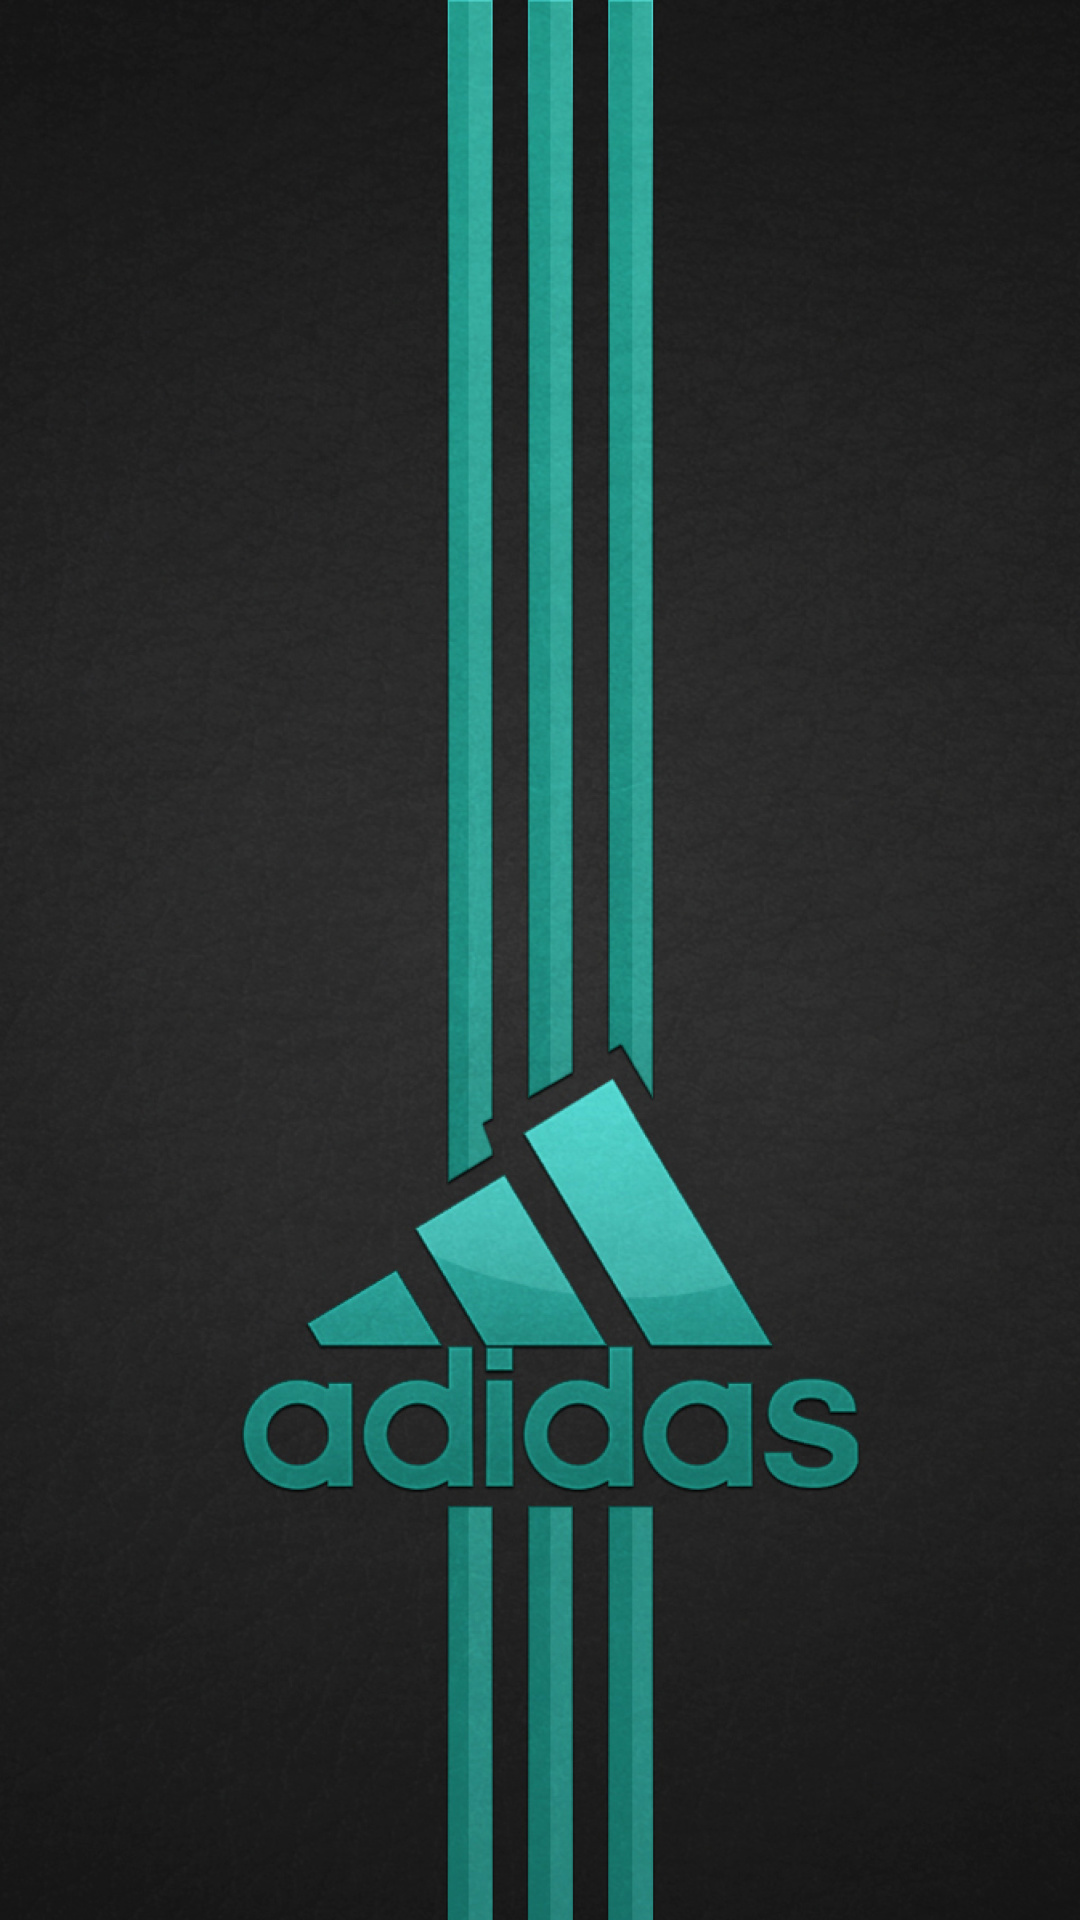 [71+] Adidas Originals Wallpaper on WallpaperSafari